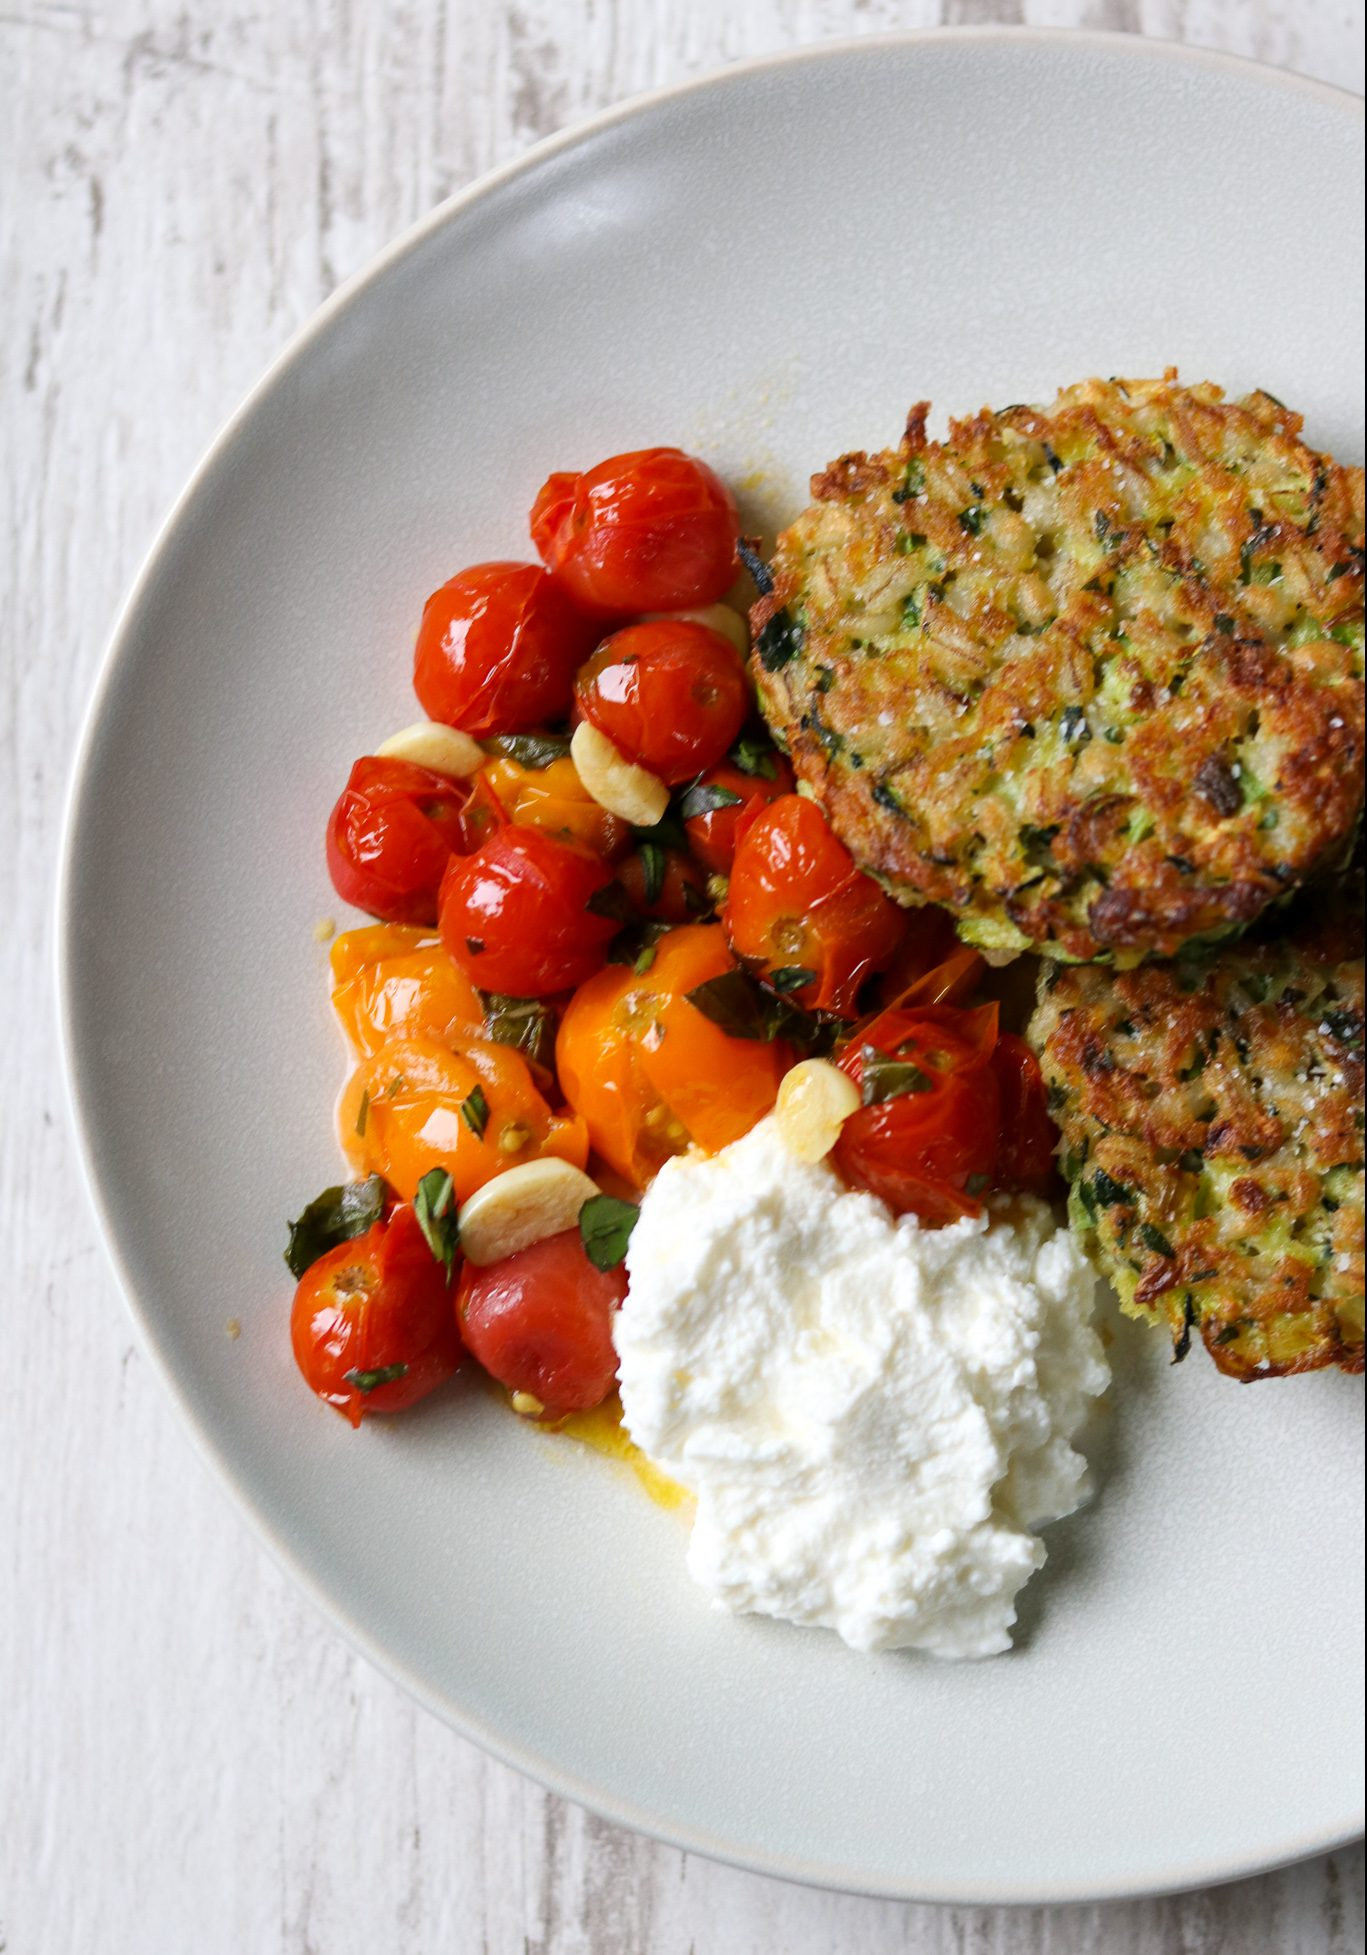 ZUCCHINI BARLEY CAKES WITH ROASTED CHERRY TOMATOES AND RICOTTA